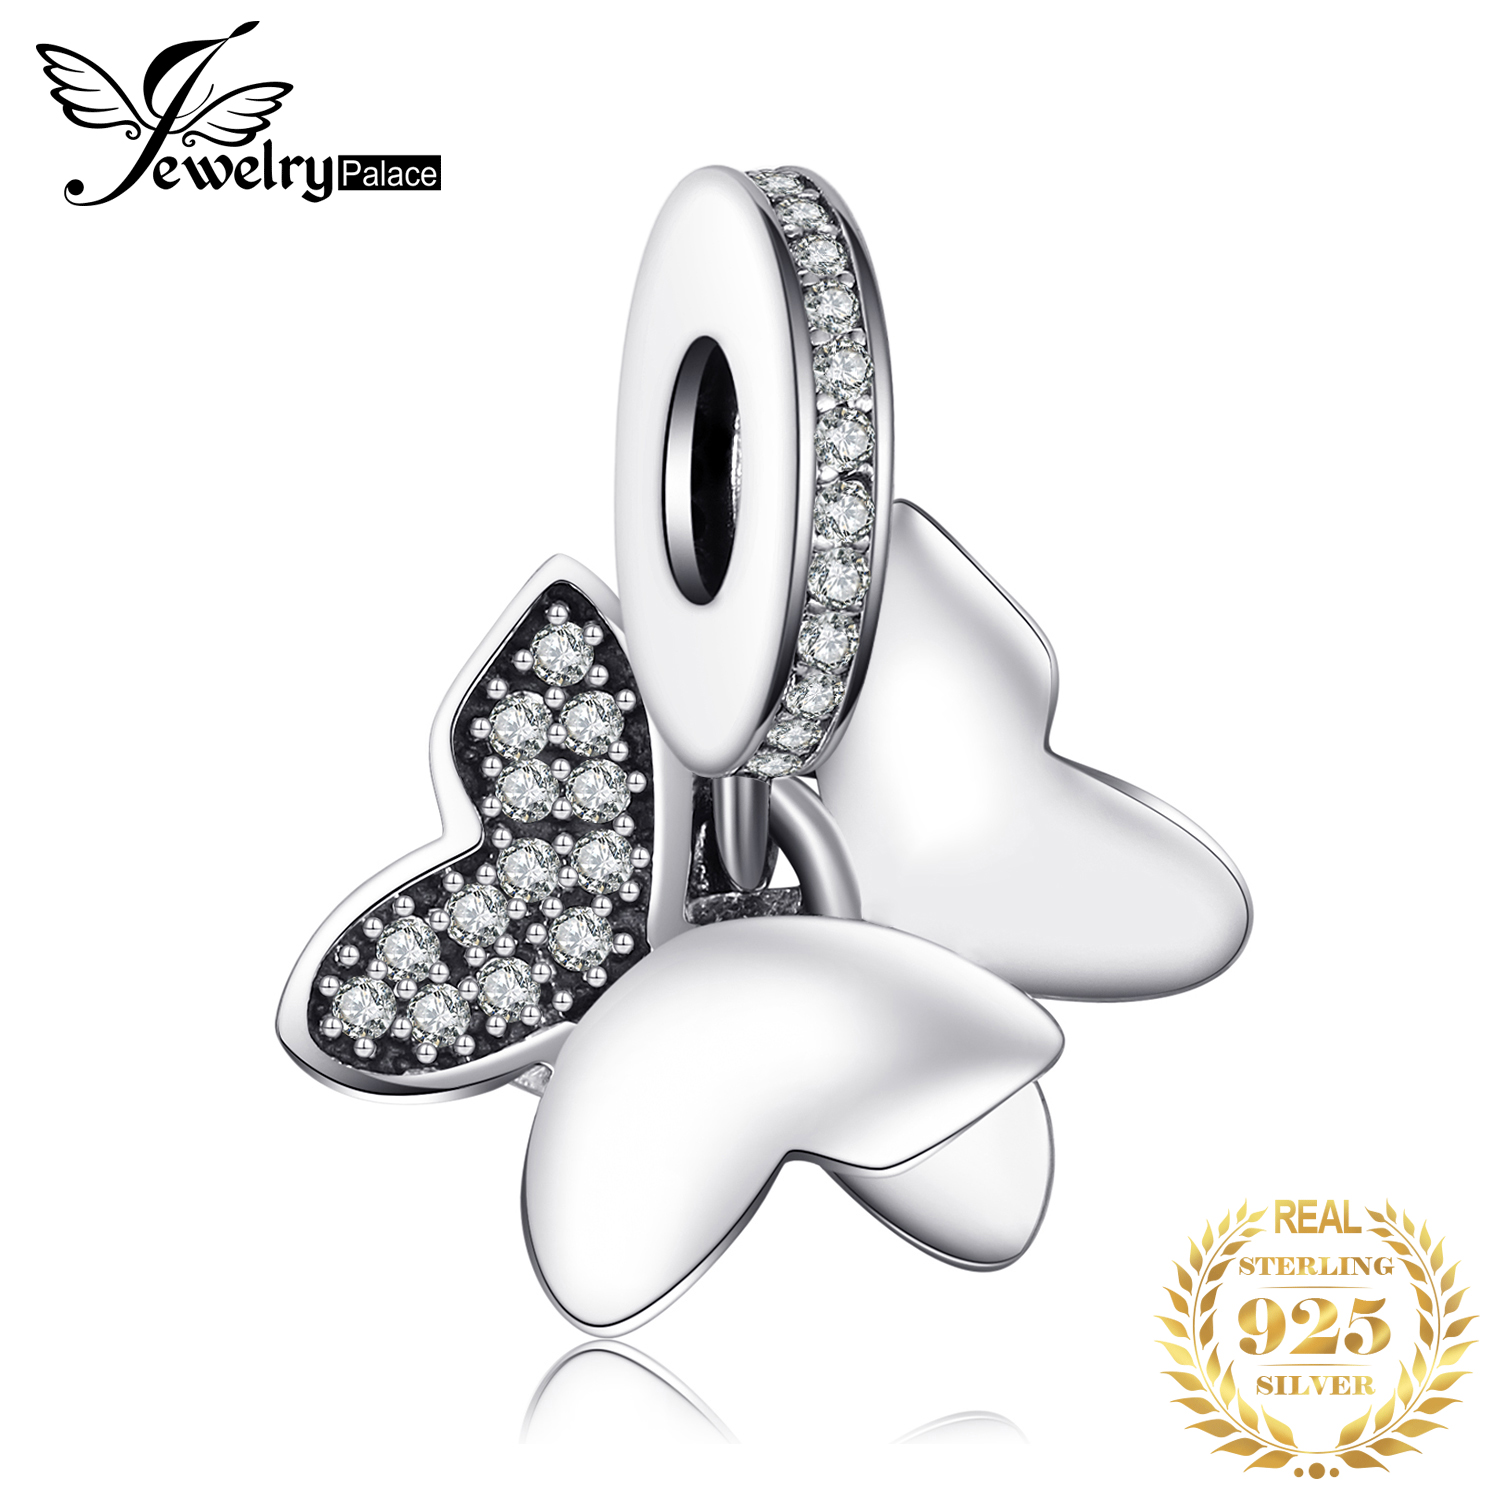 Jewelrypalace Butterfly Fairy White Murano Glass & Pave Cubic Zirconia Charm  Bracelets 925 Sterling Silver